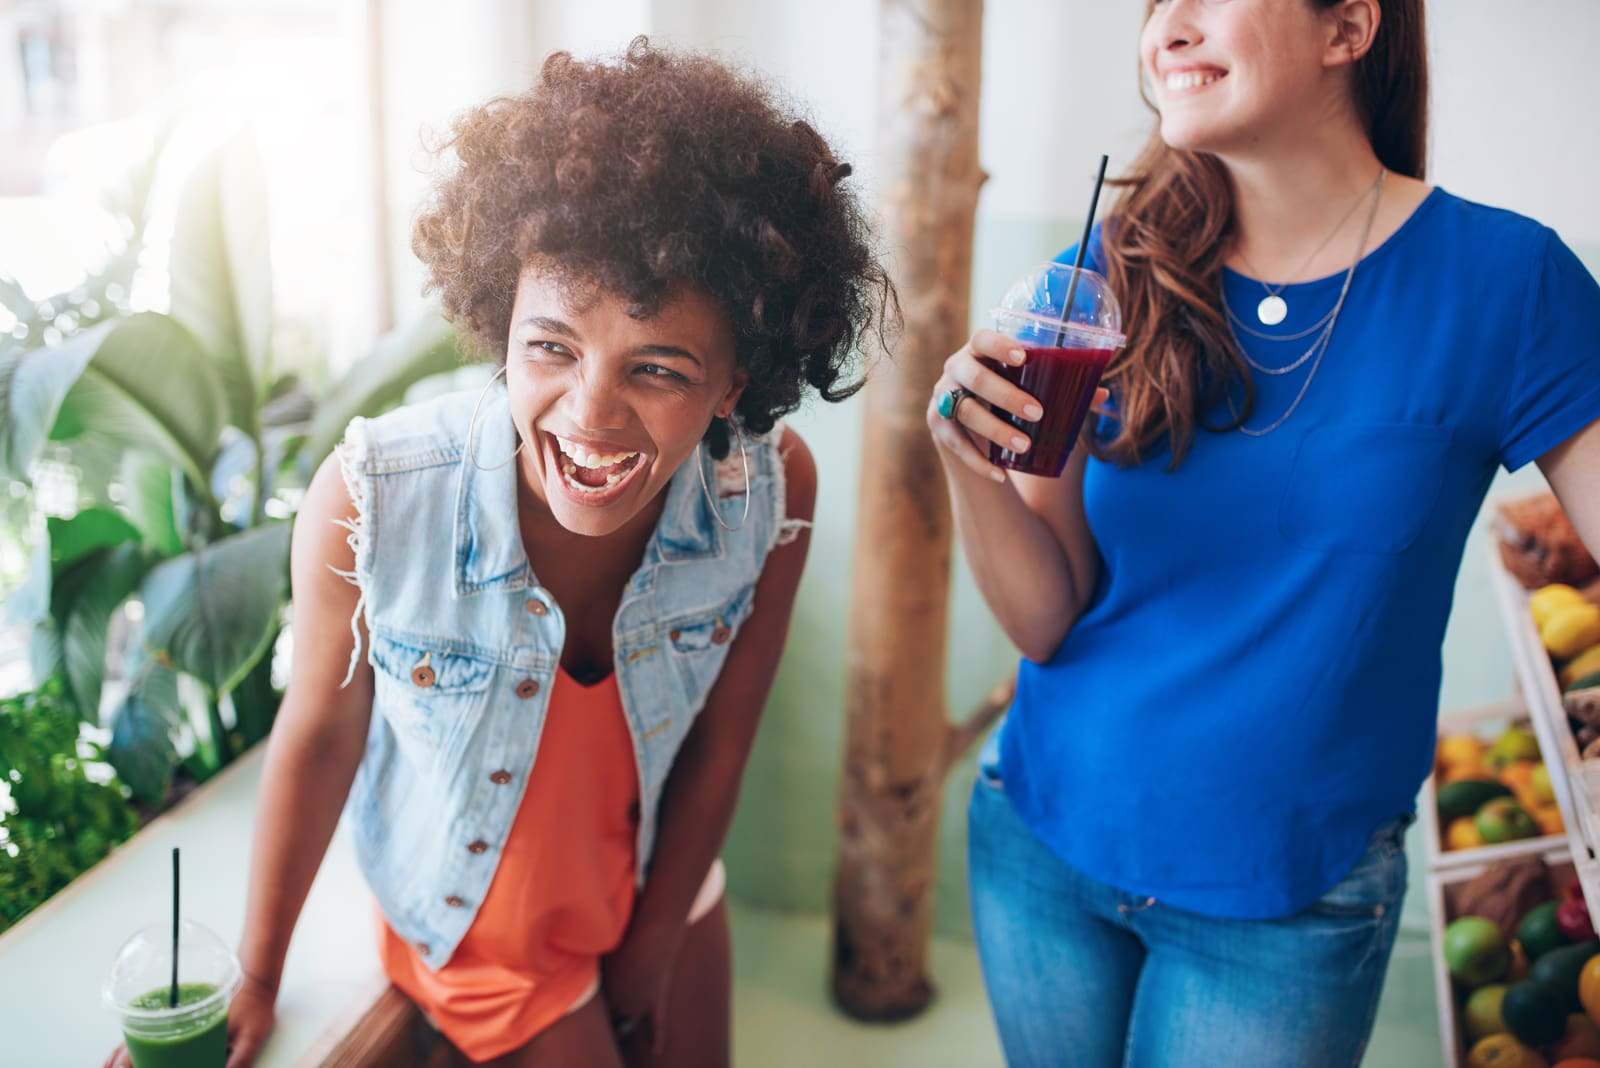 smiling friends drink smoothies